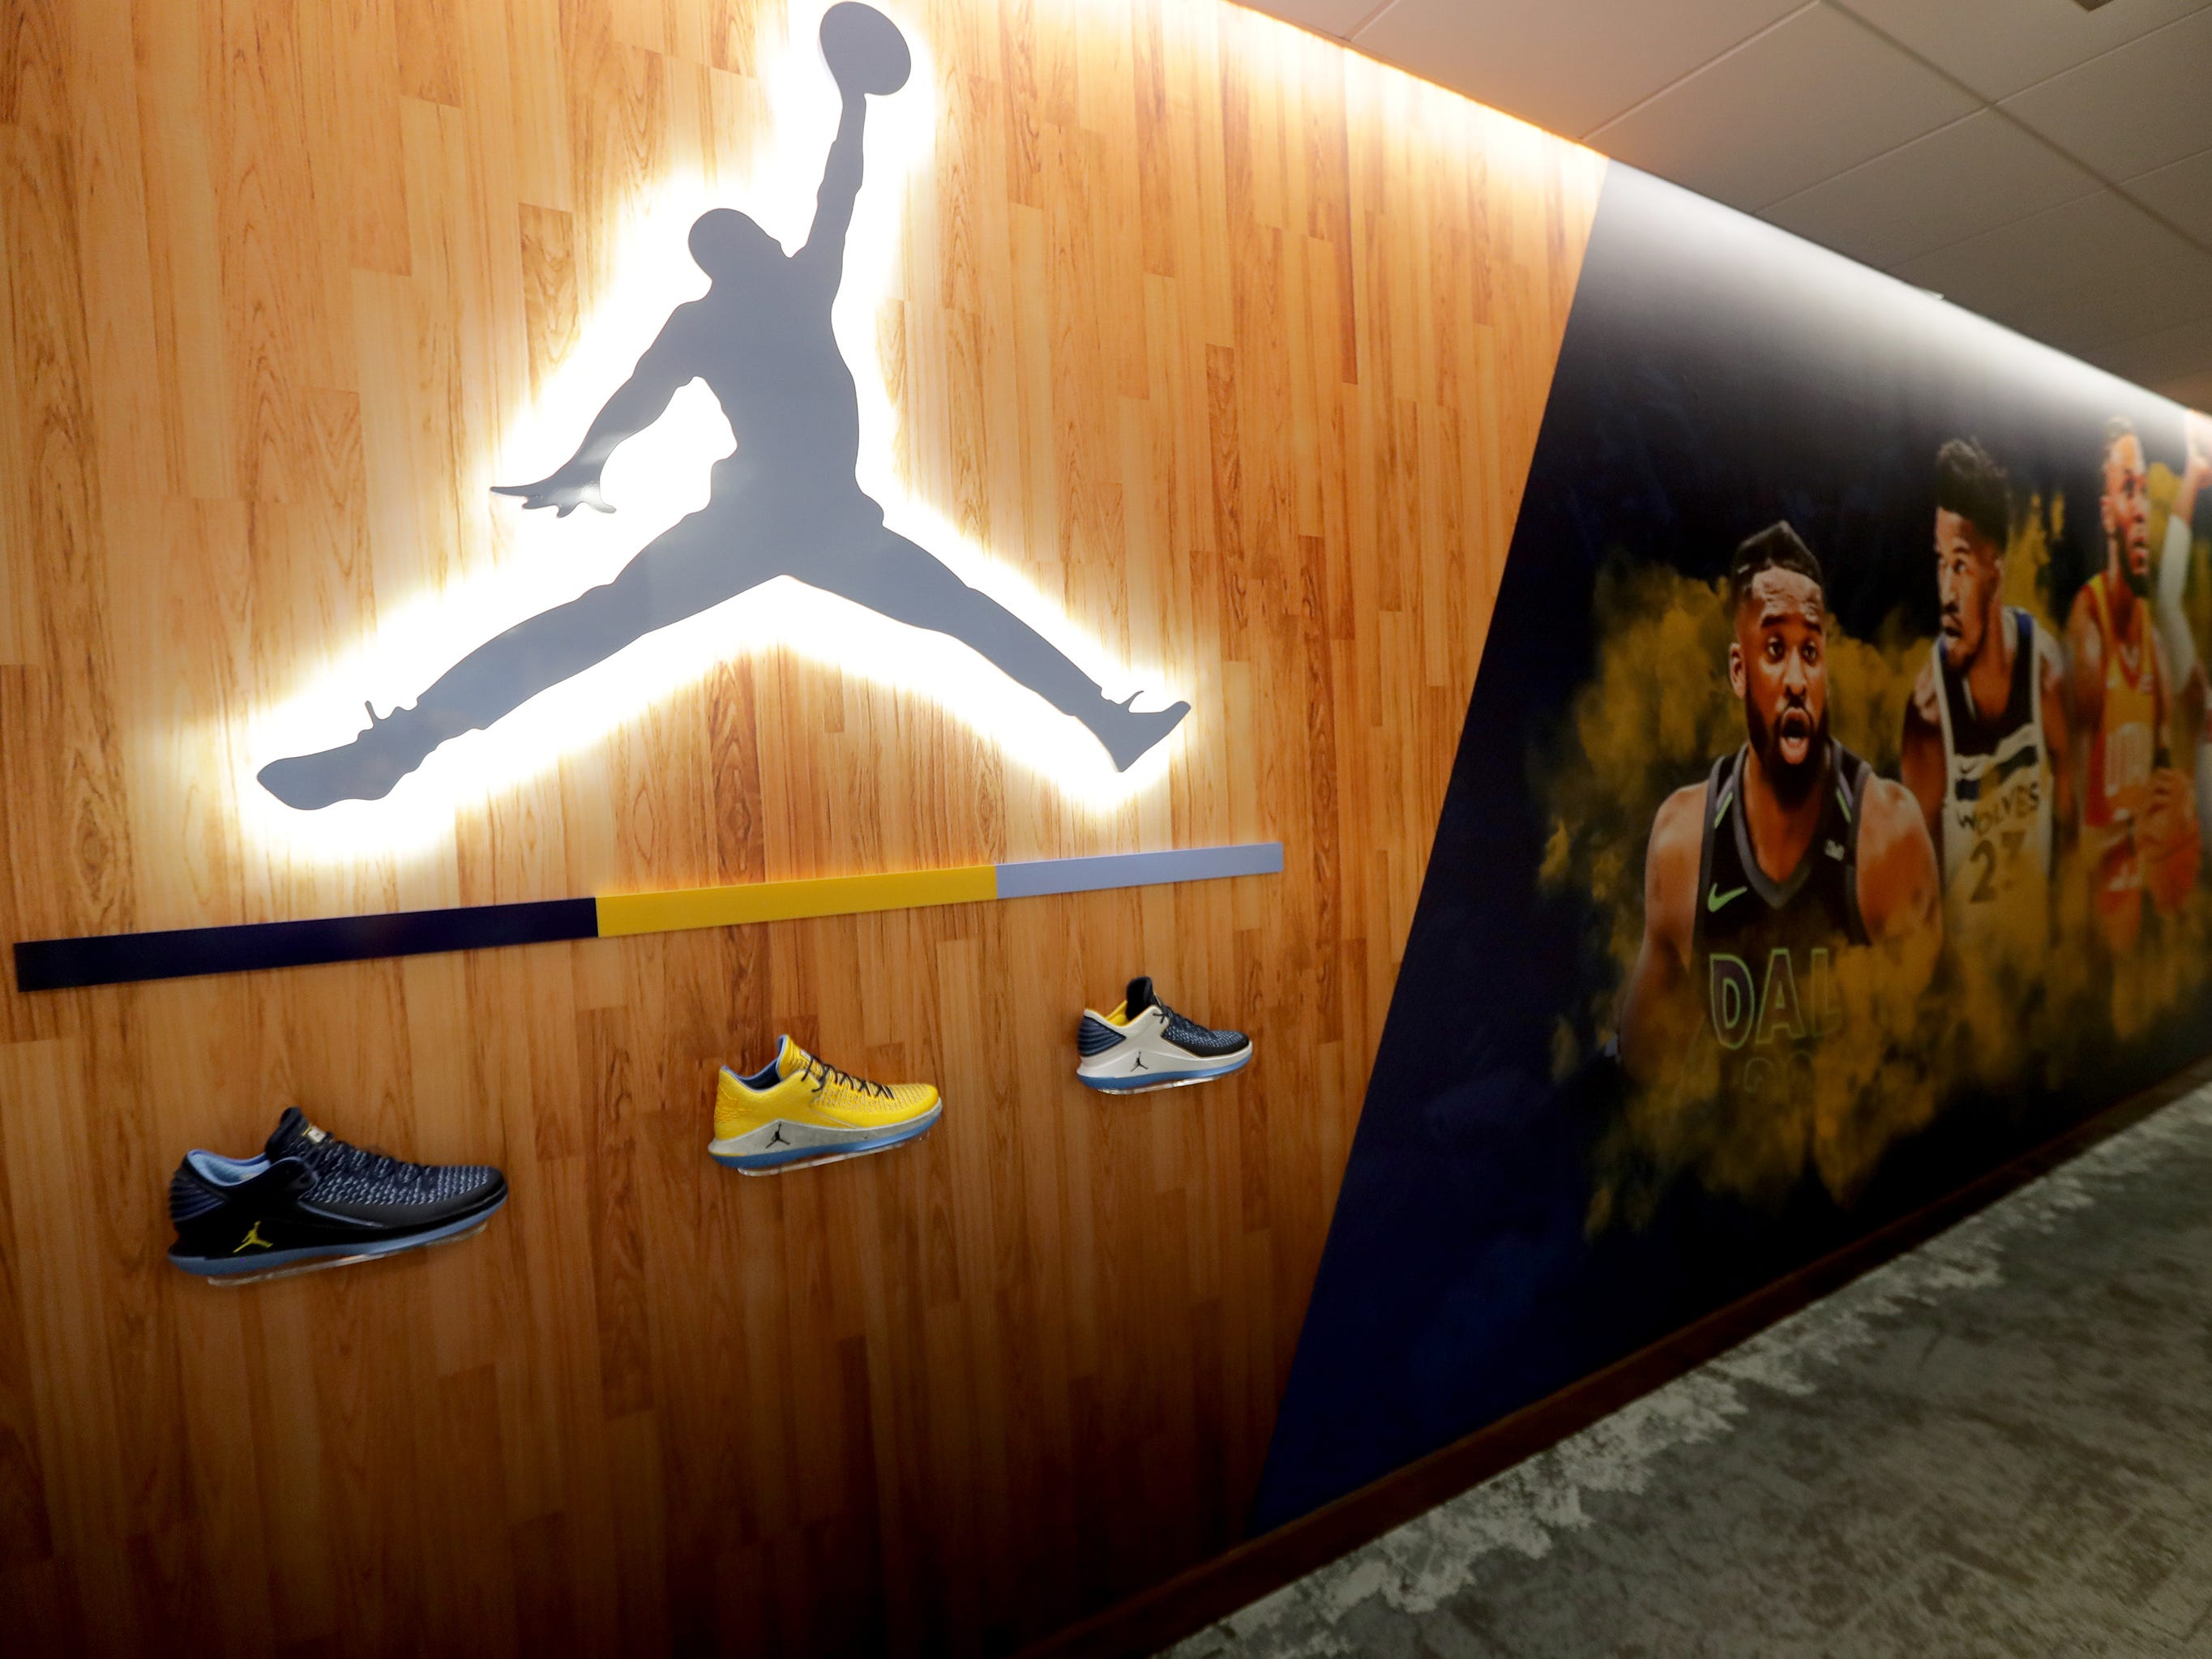 A hallway of the locker room, leading to the coaches office features an Air Jordan logo. The Marquette mens' basketball team locker room is complete at the new Fiserve Forum, the home of the Milwaukee Bucks. Monday, August 27, 2018.  -  Photo by Mike De Sisti / Milwaukee Journal Sentinel